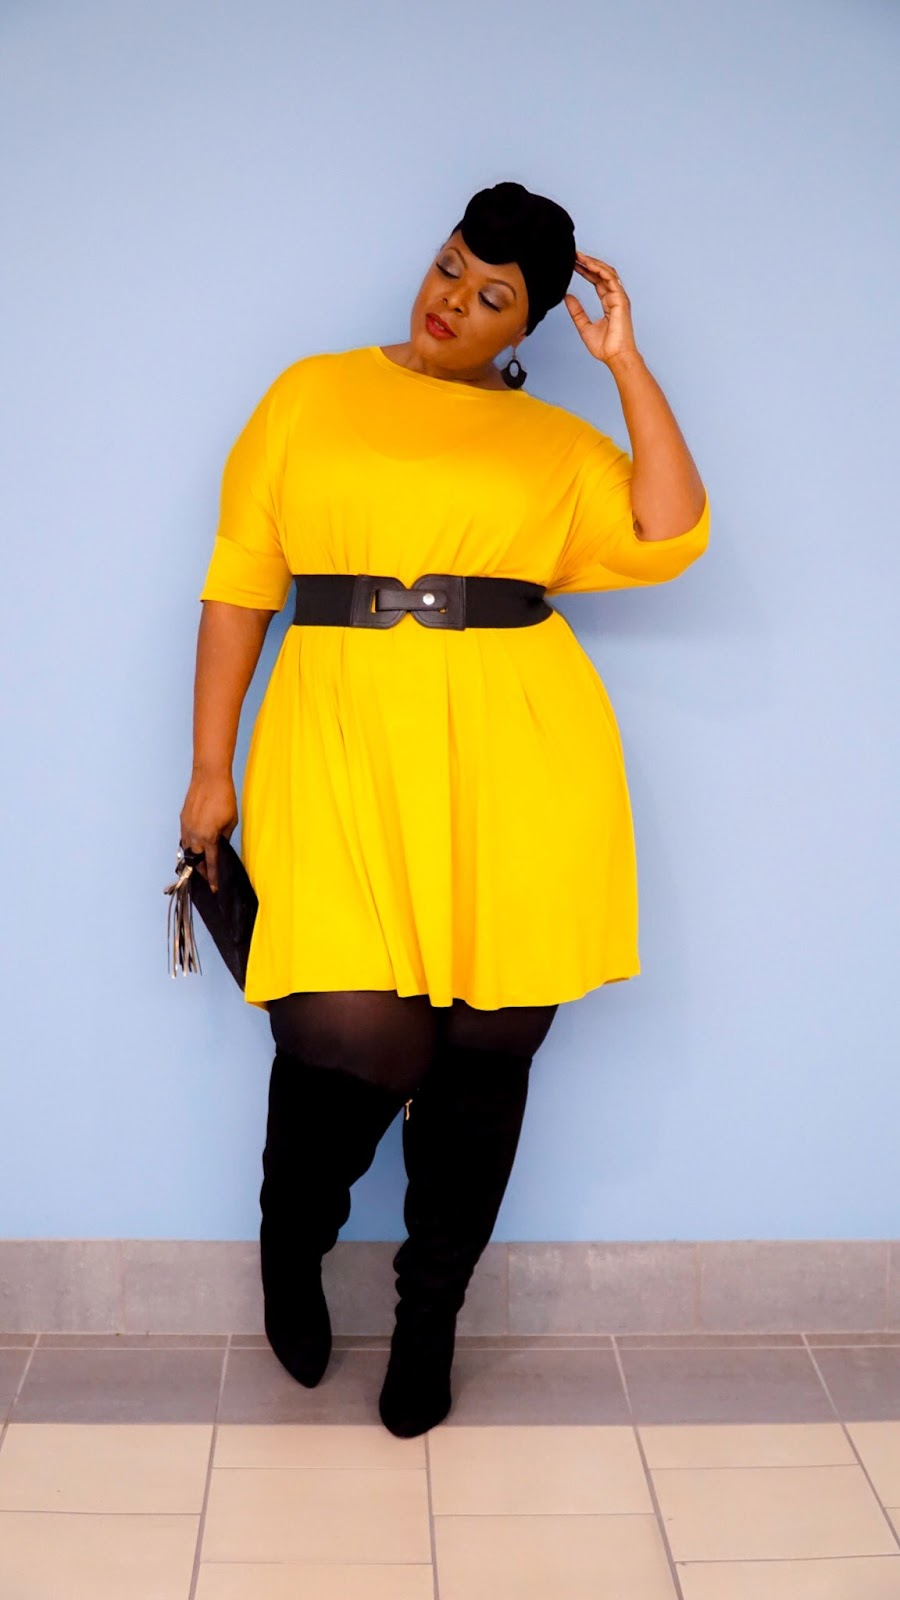 asos yellow dress, asos yellow dress, tshirt dress, plus size tshirt dress